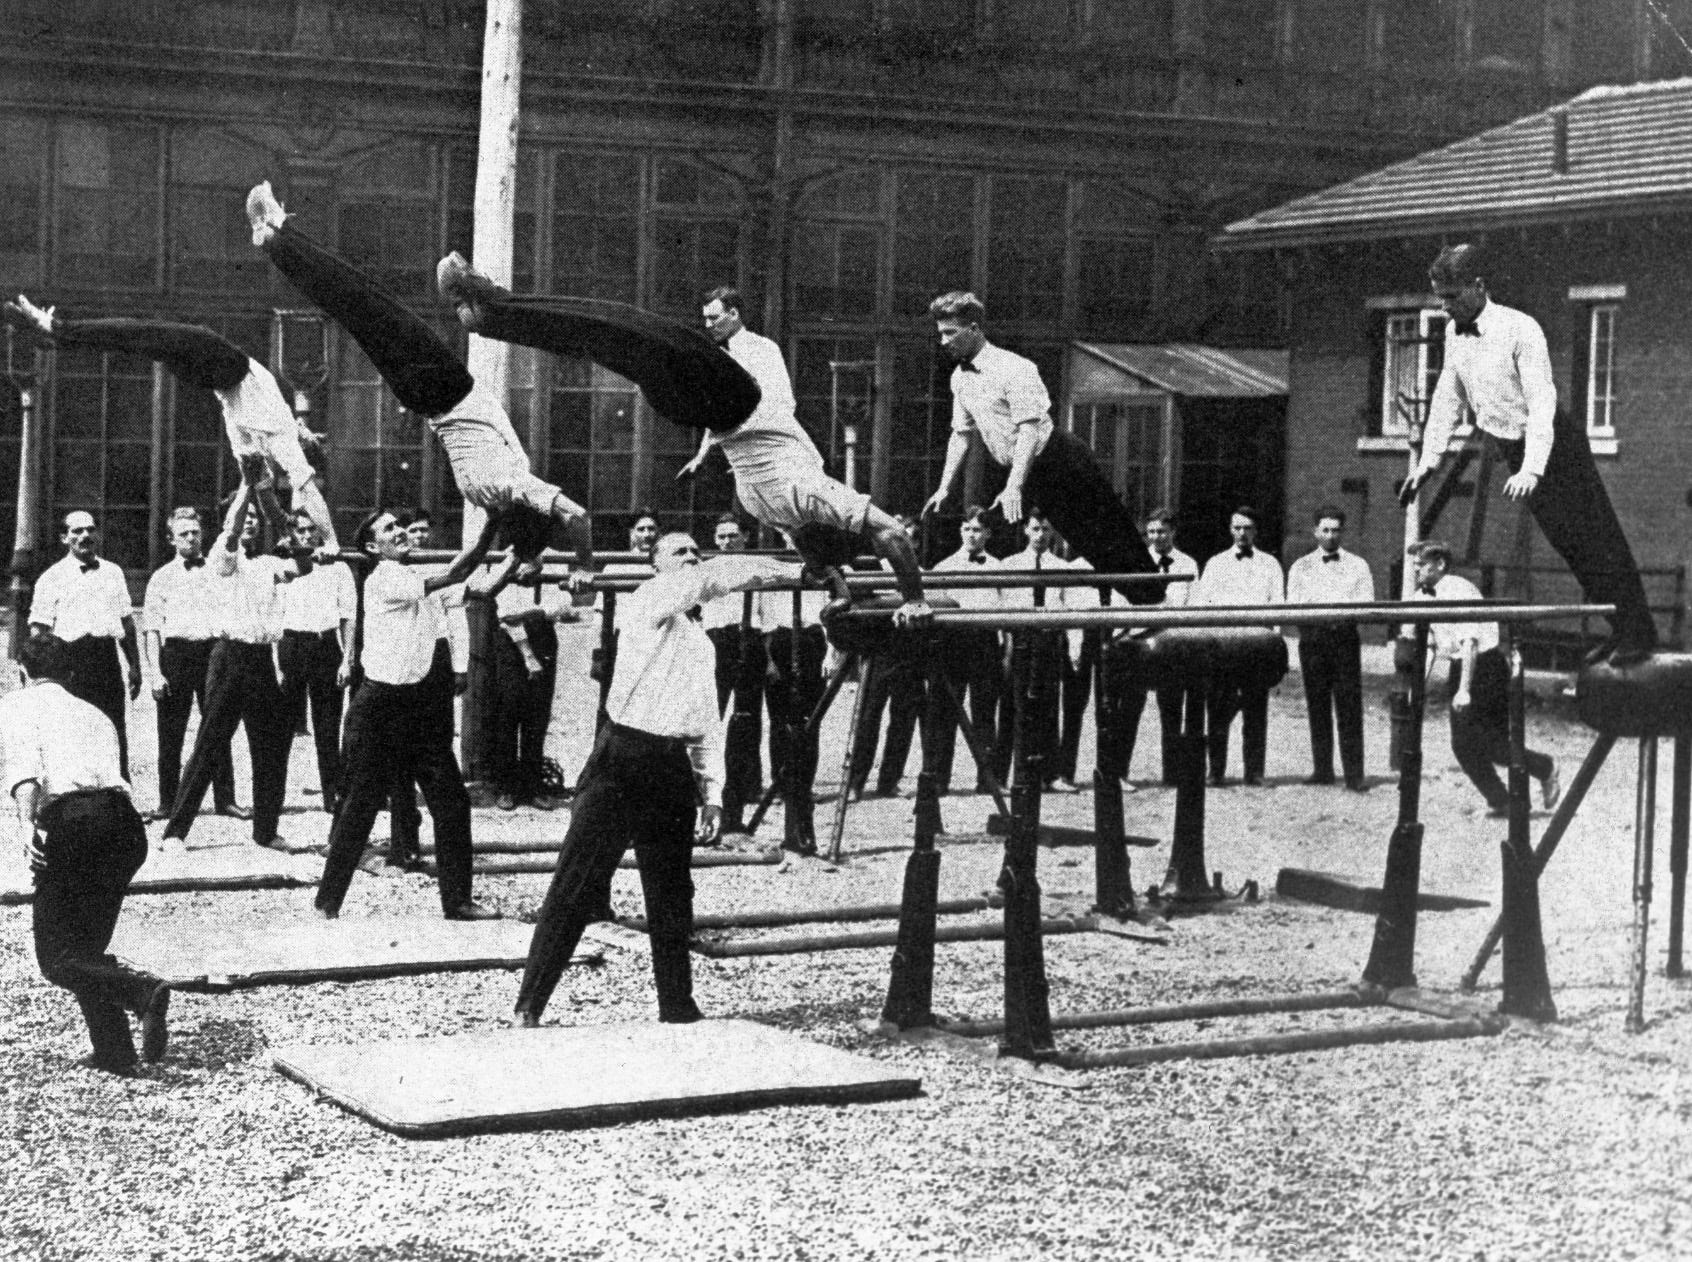 Men demonstrate use of the parallel bars at Normal College in the early 1900s (in what is now the beer garden at the Athenaeum). Normal College of the American Gymnastics Union was the collegiate training school of the North American Turnerbund.